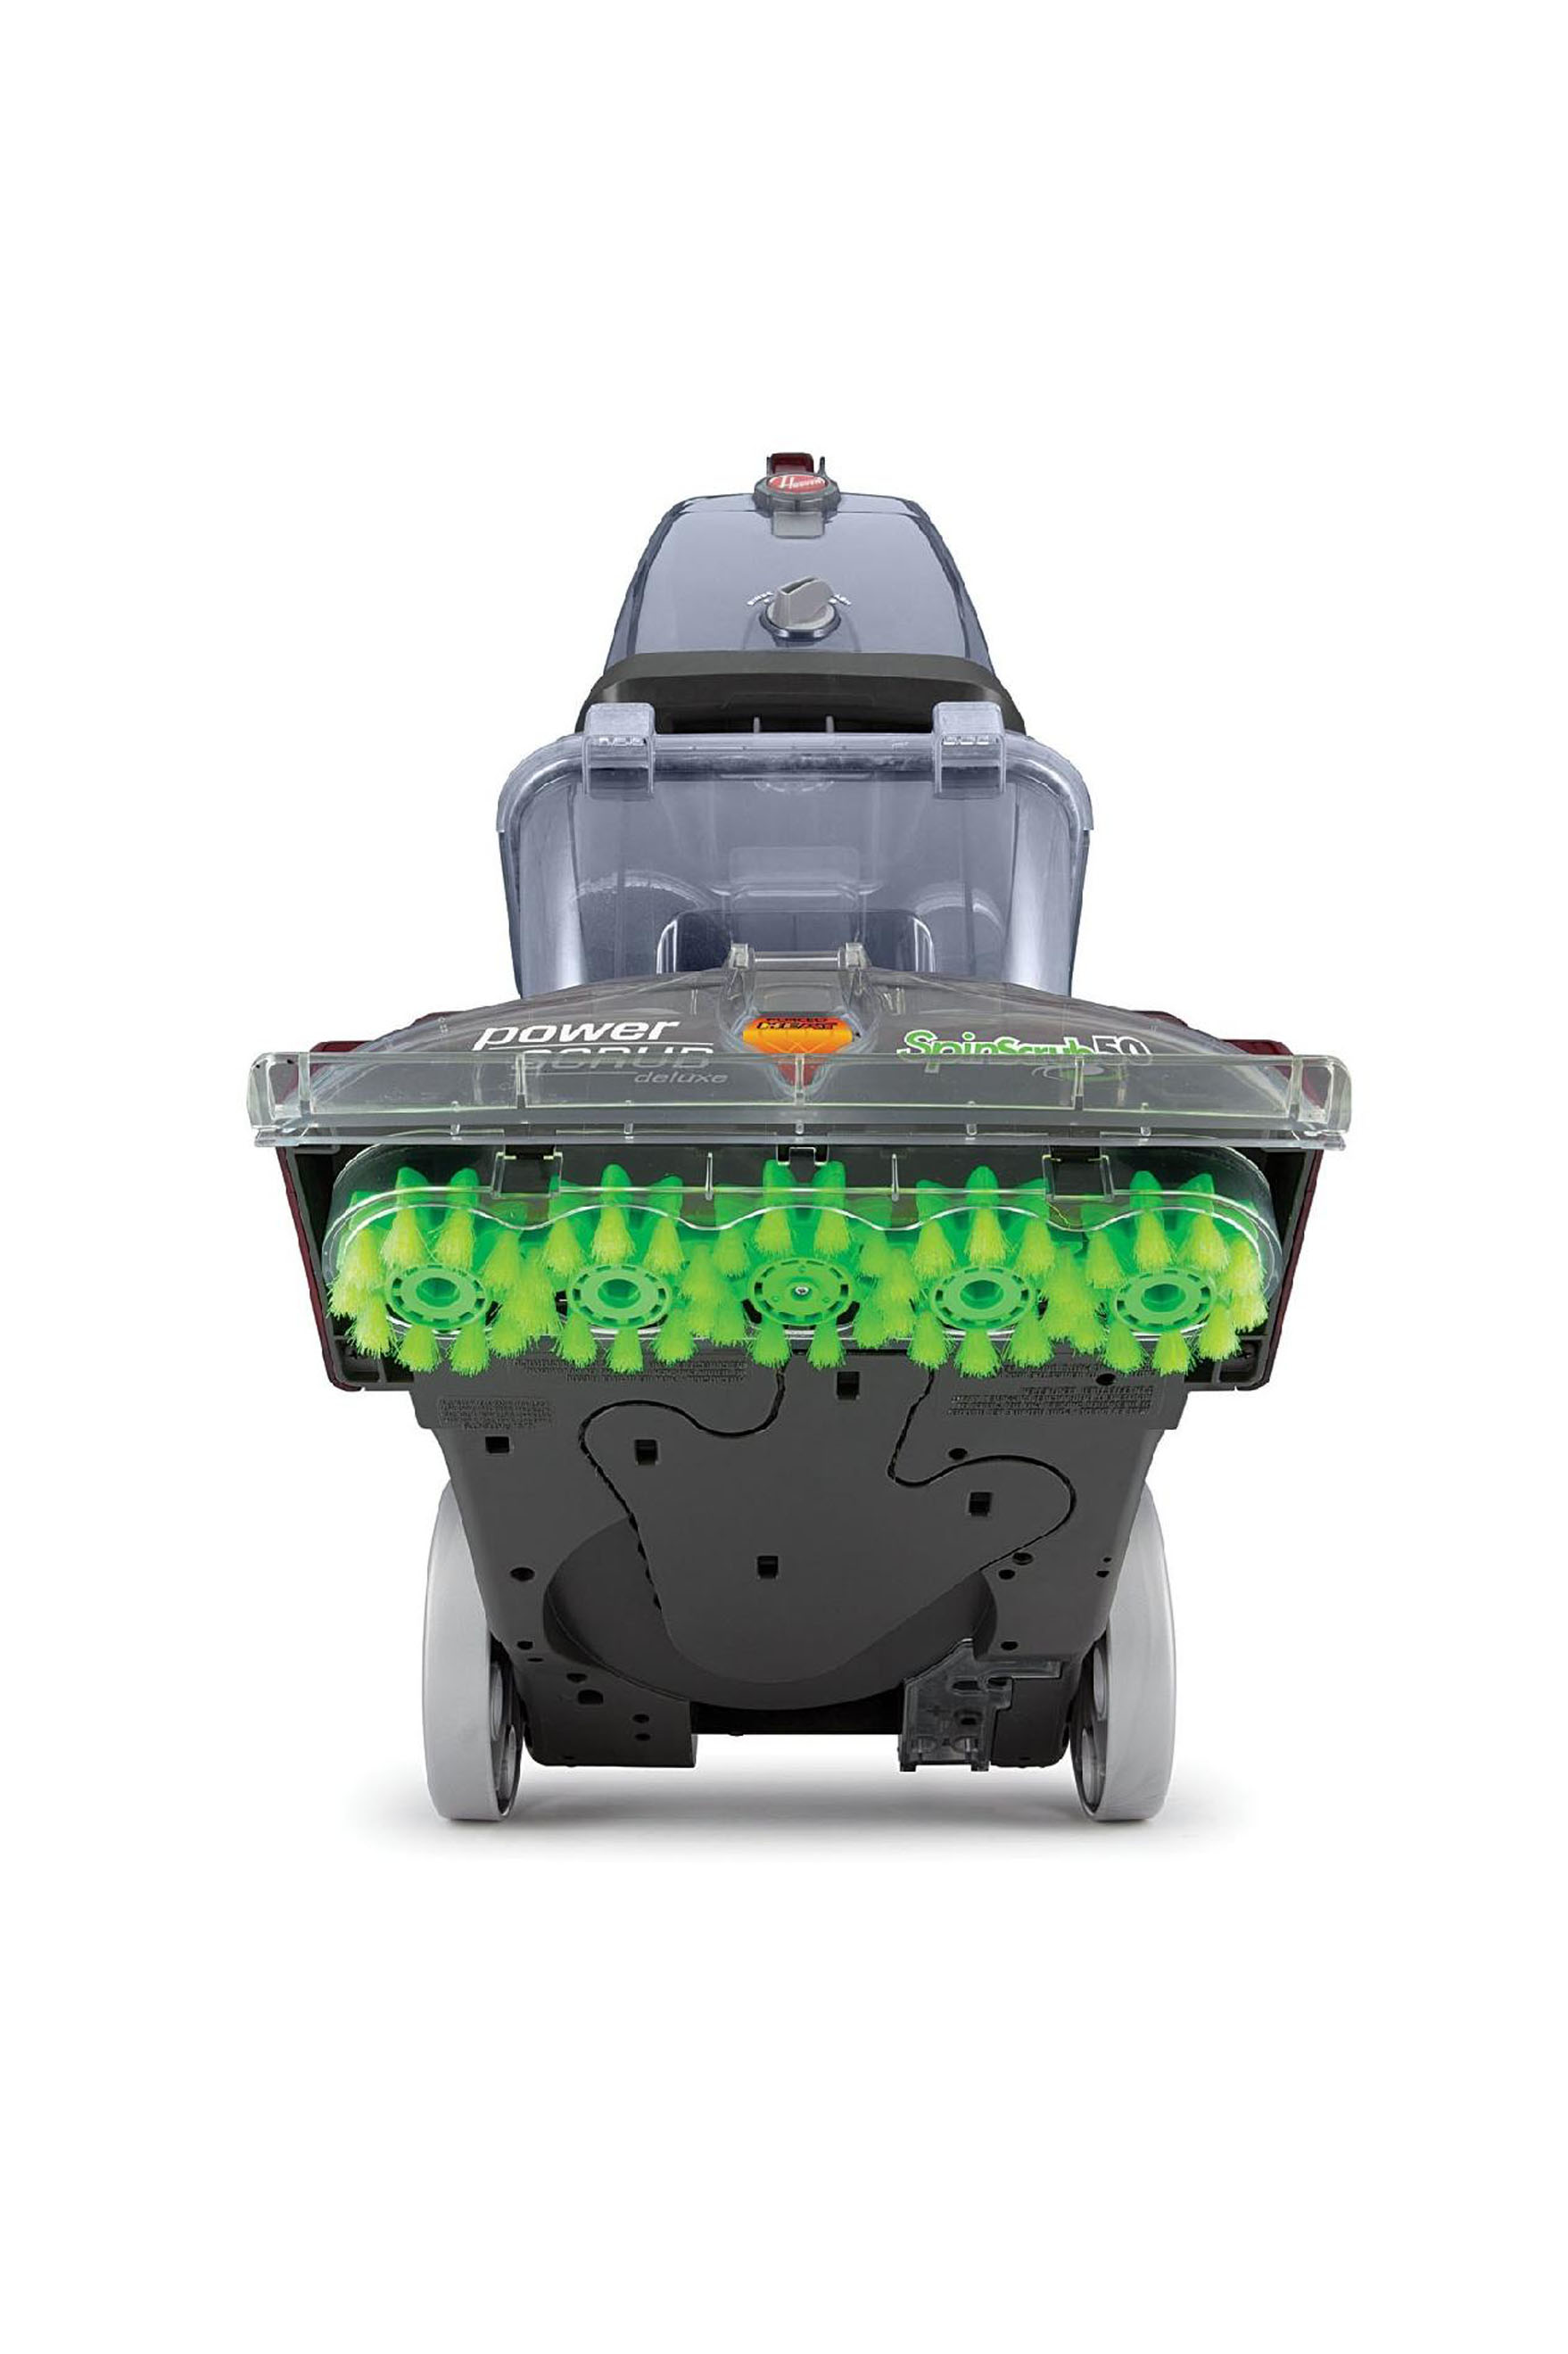 Hoover FH50150 Power Scrub Deluxe Carpet Washer